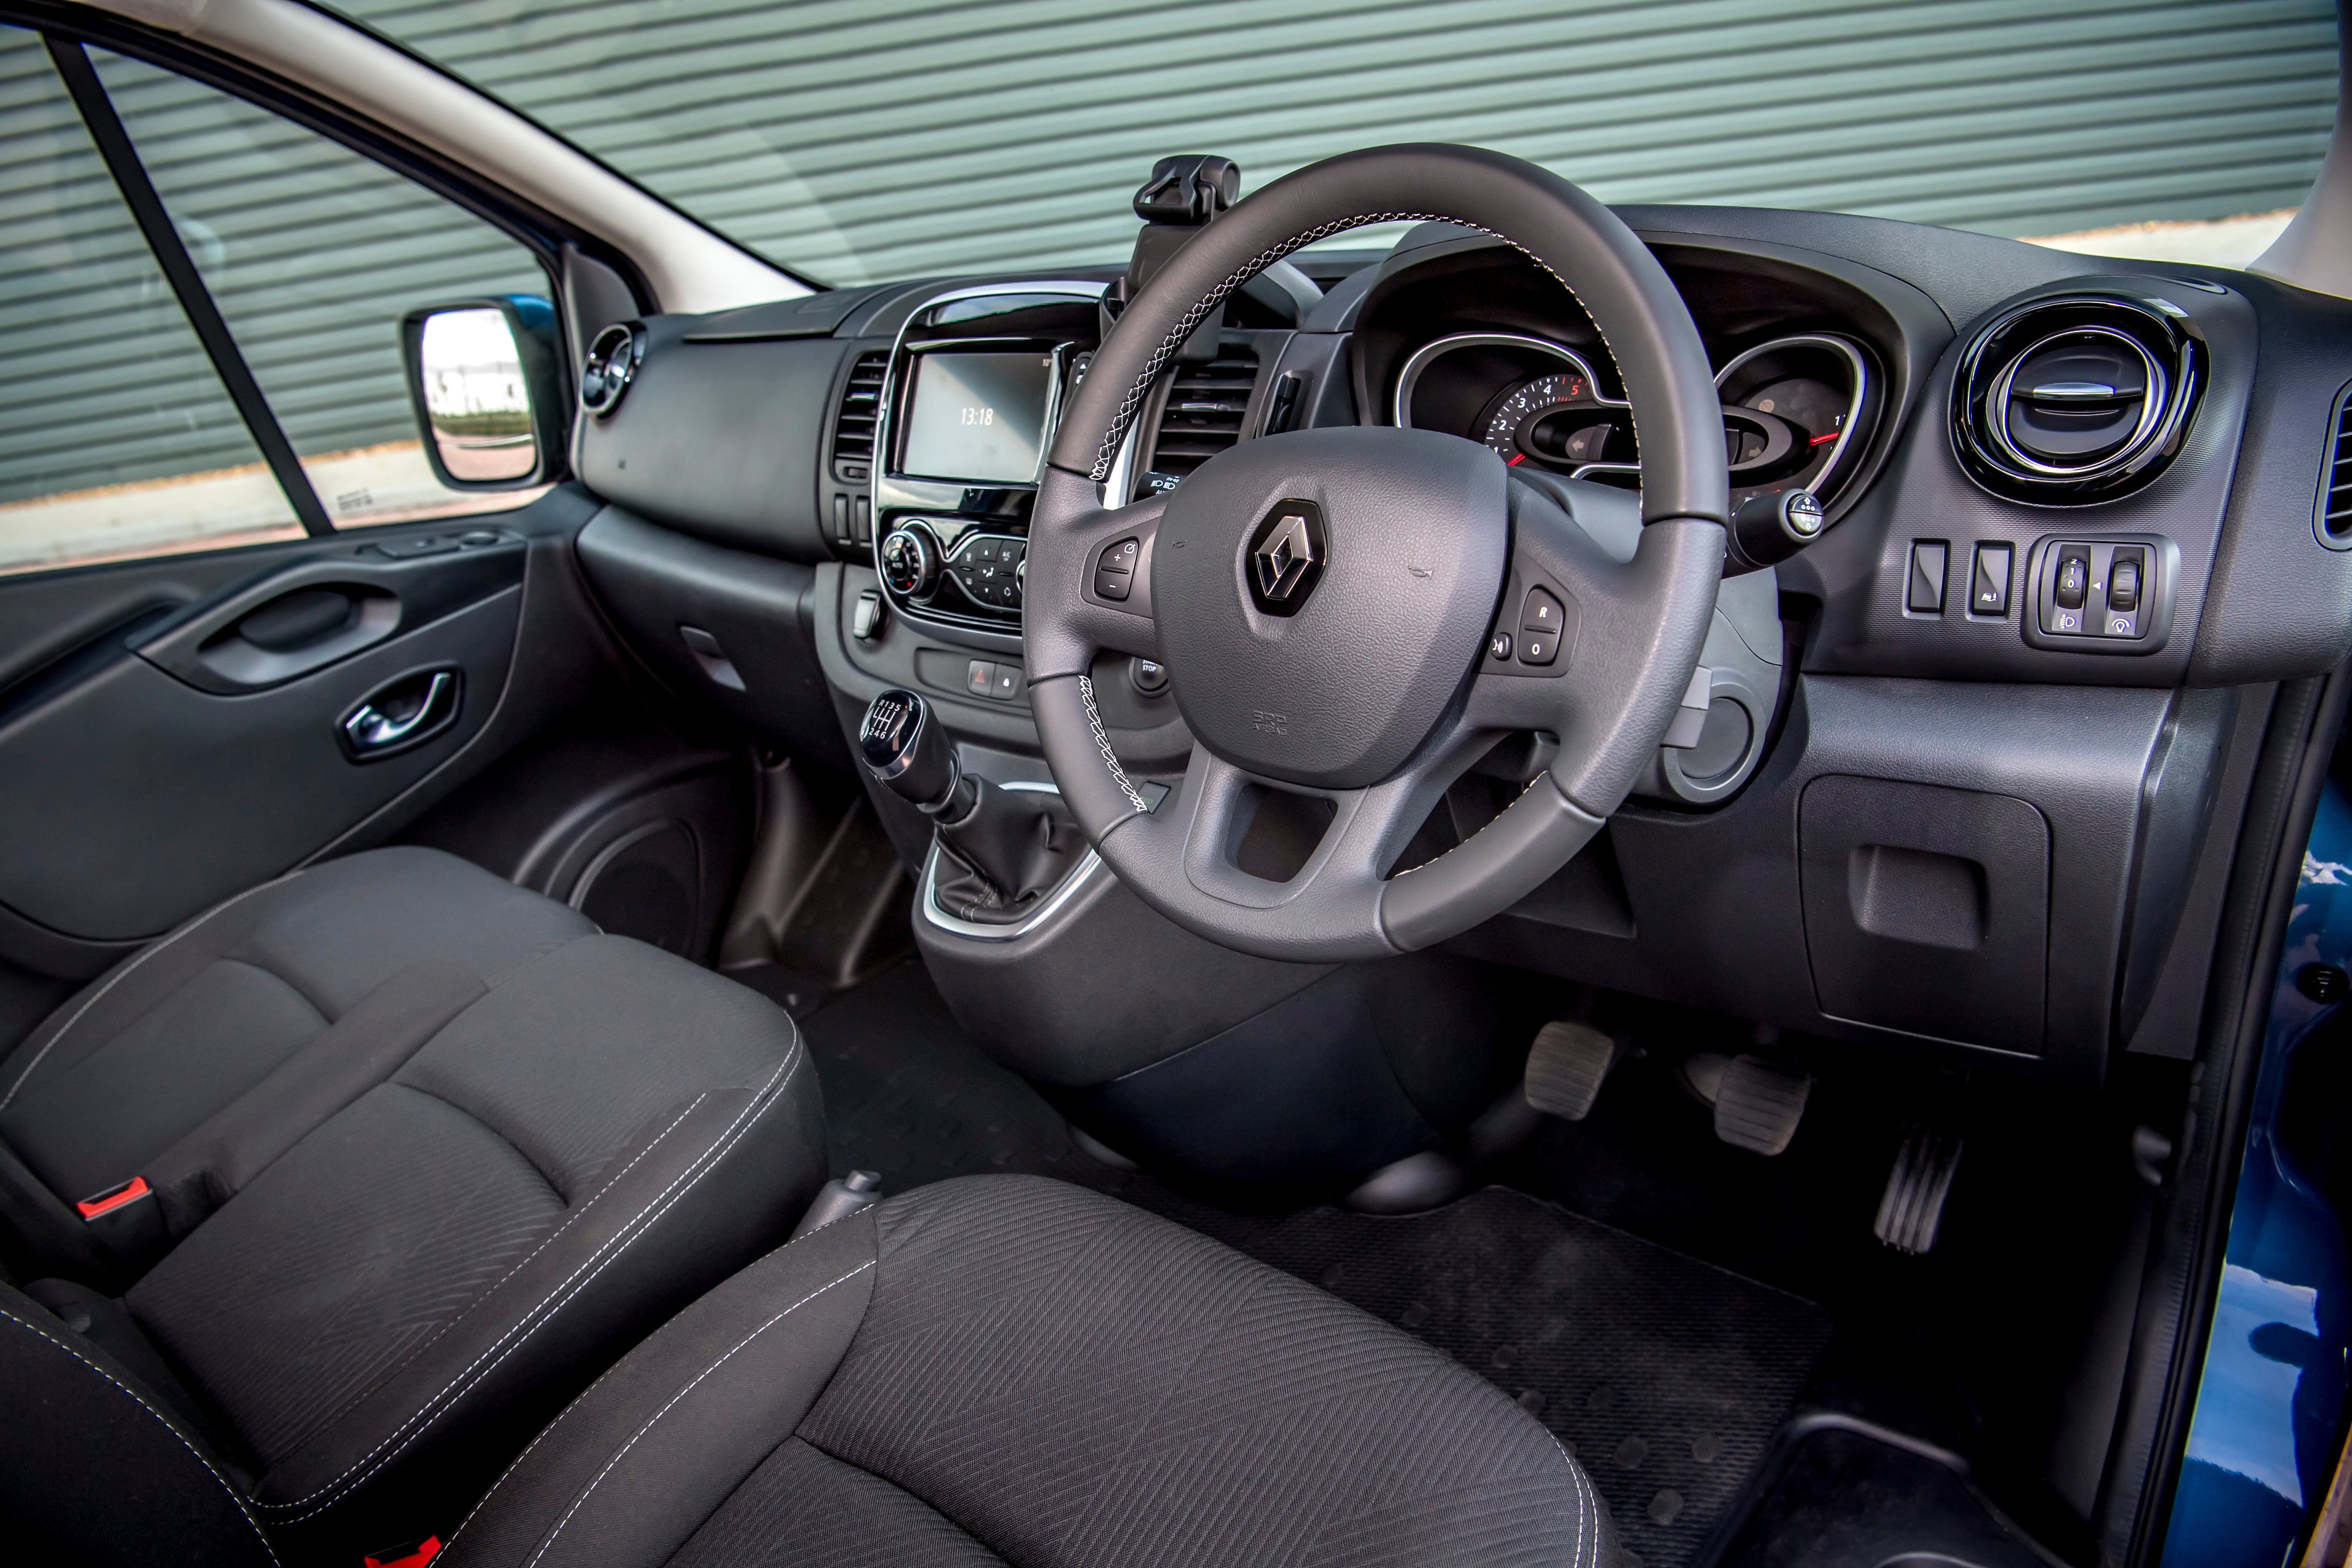 Renault Trafic Front Interior